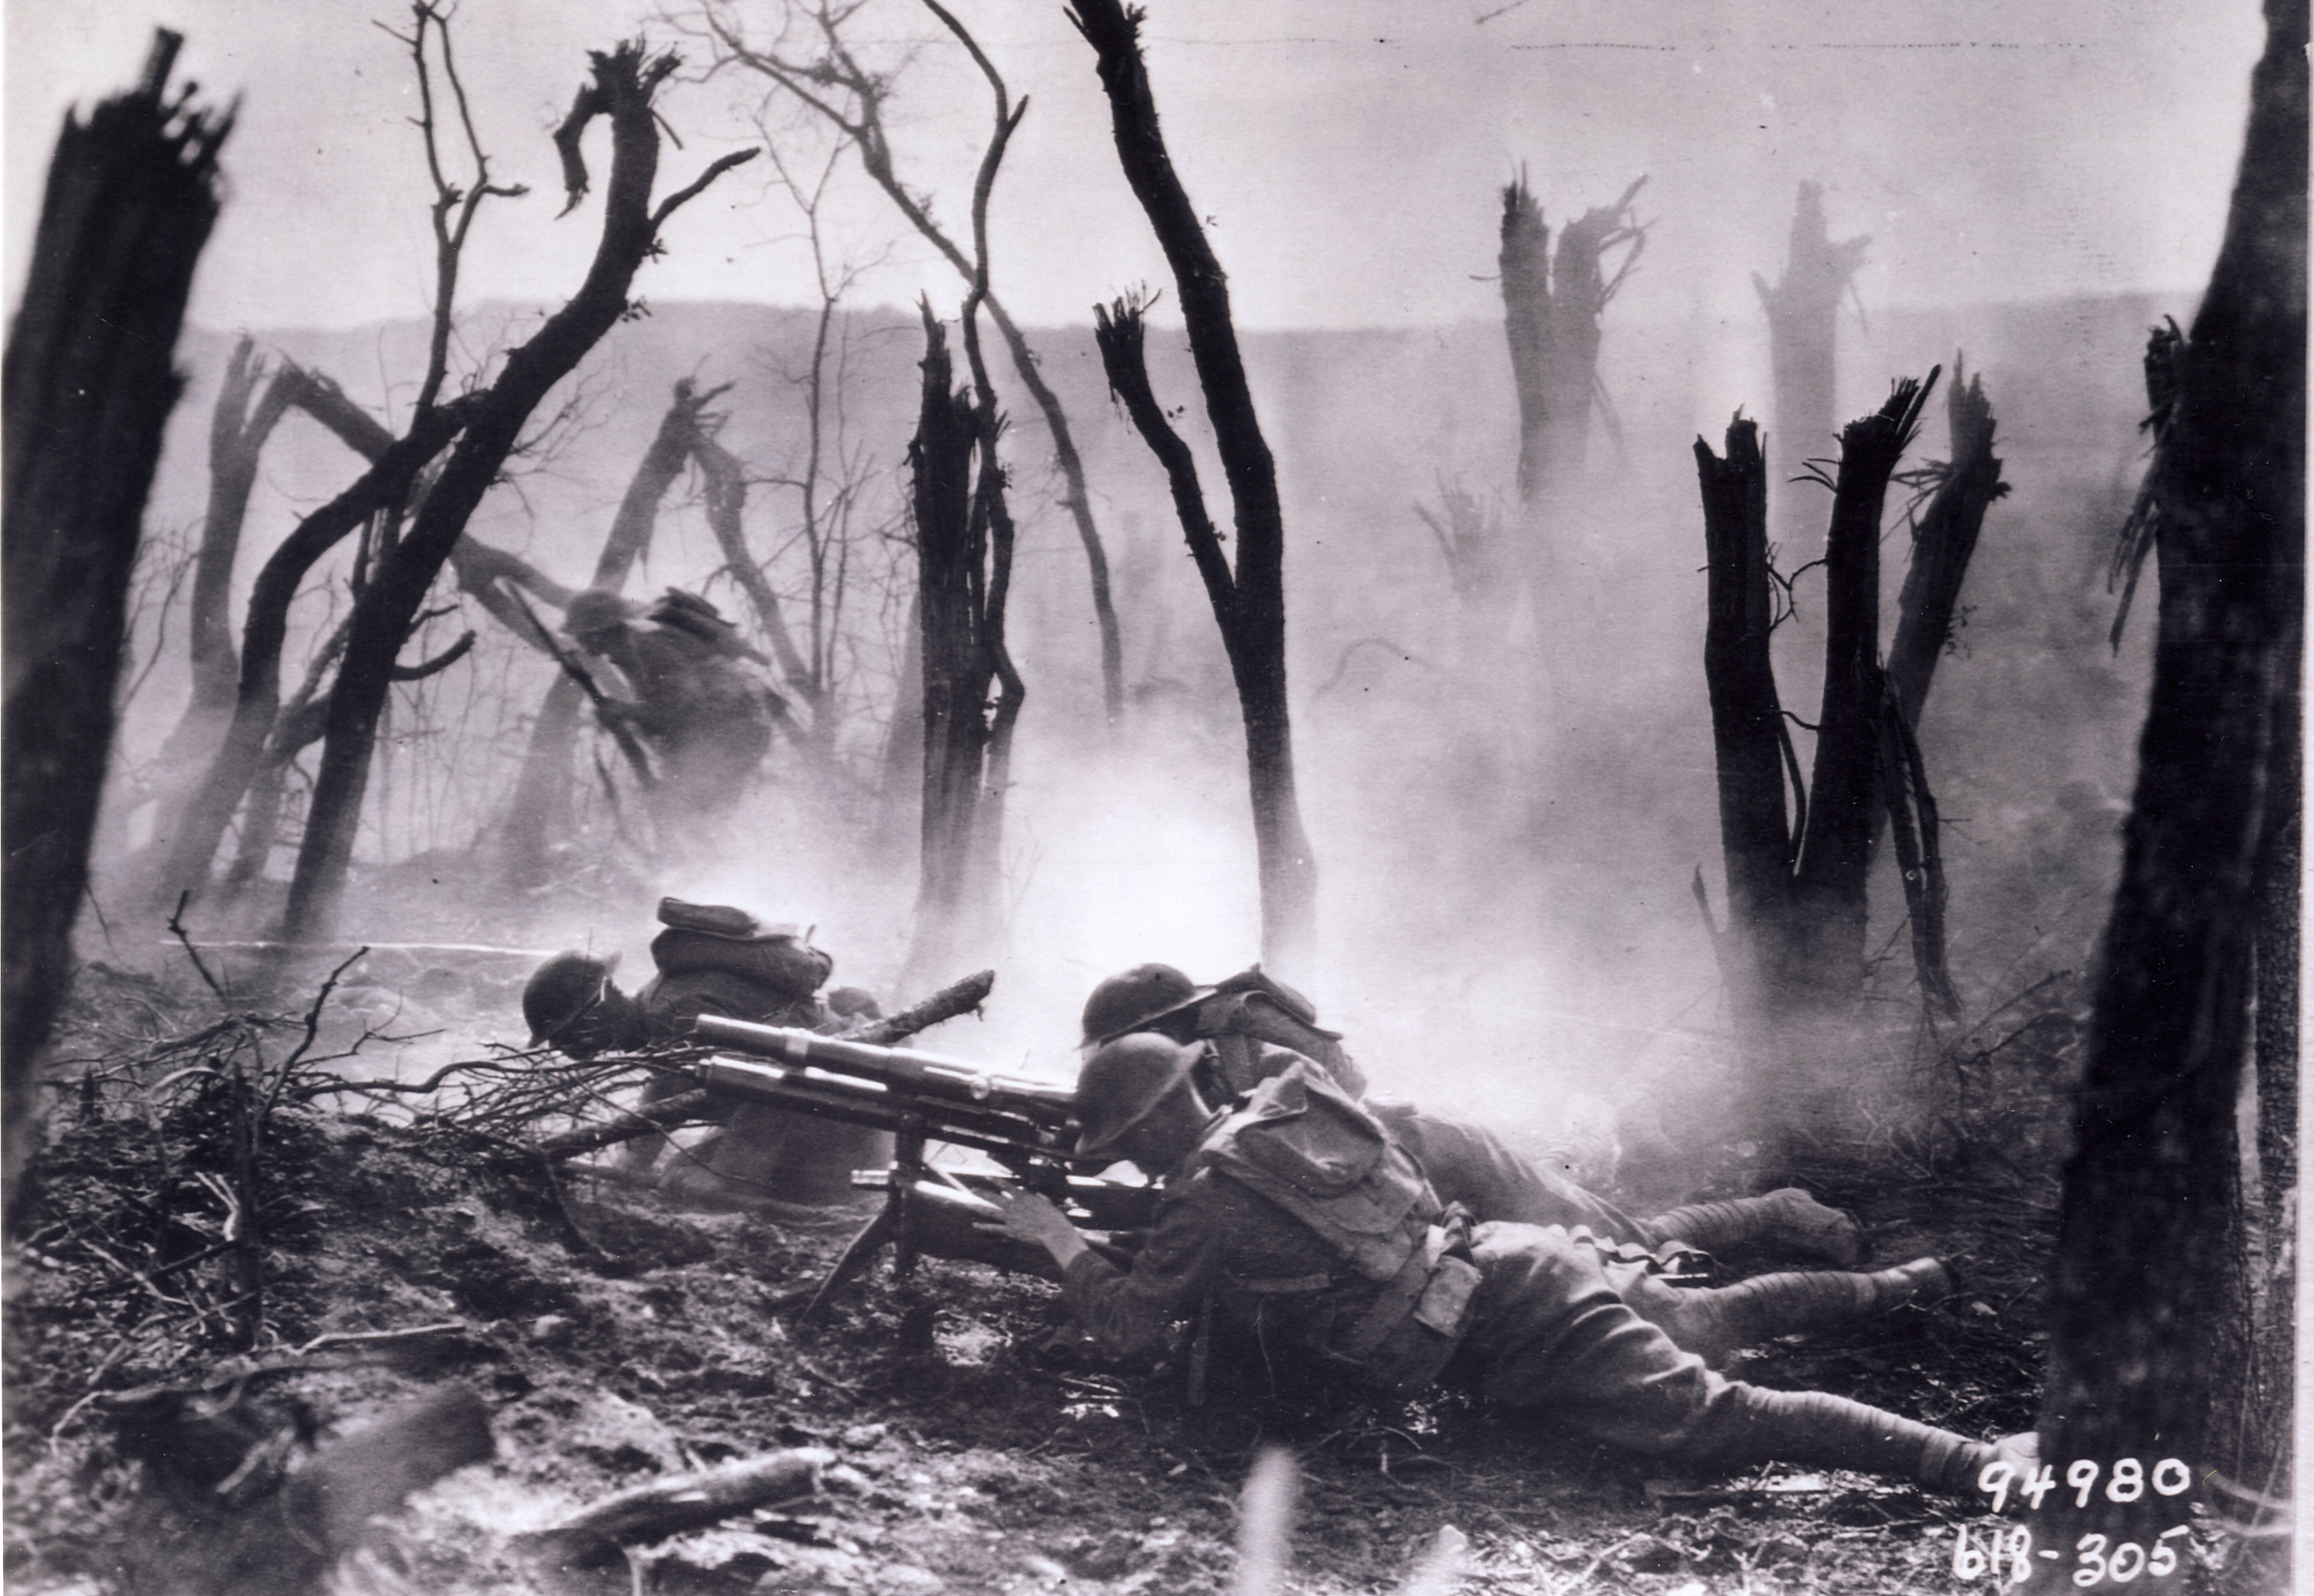 100 Years Since Wwi Films On The Environmental Impact Of War